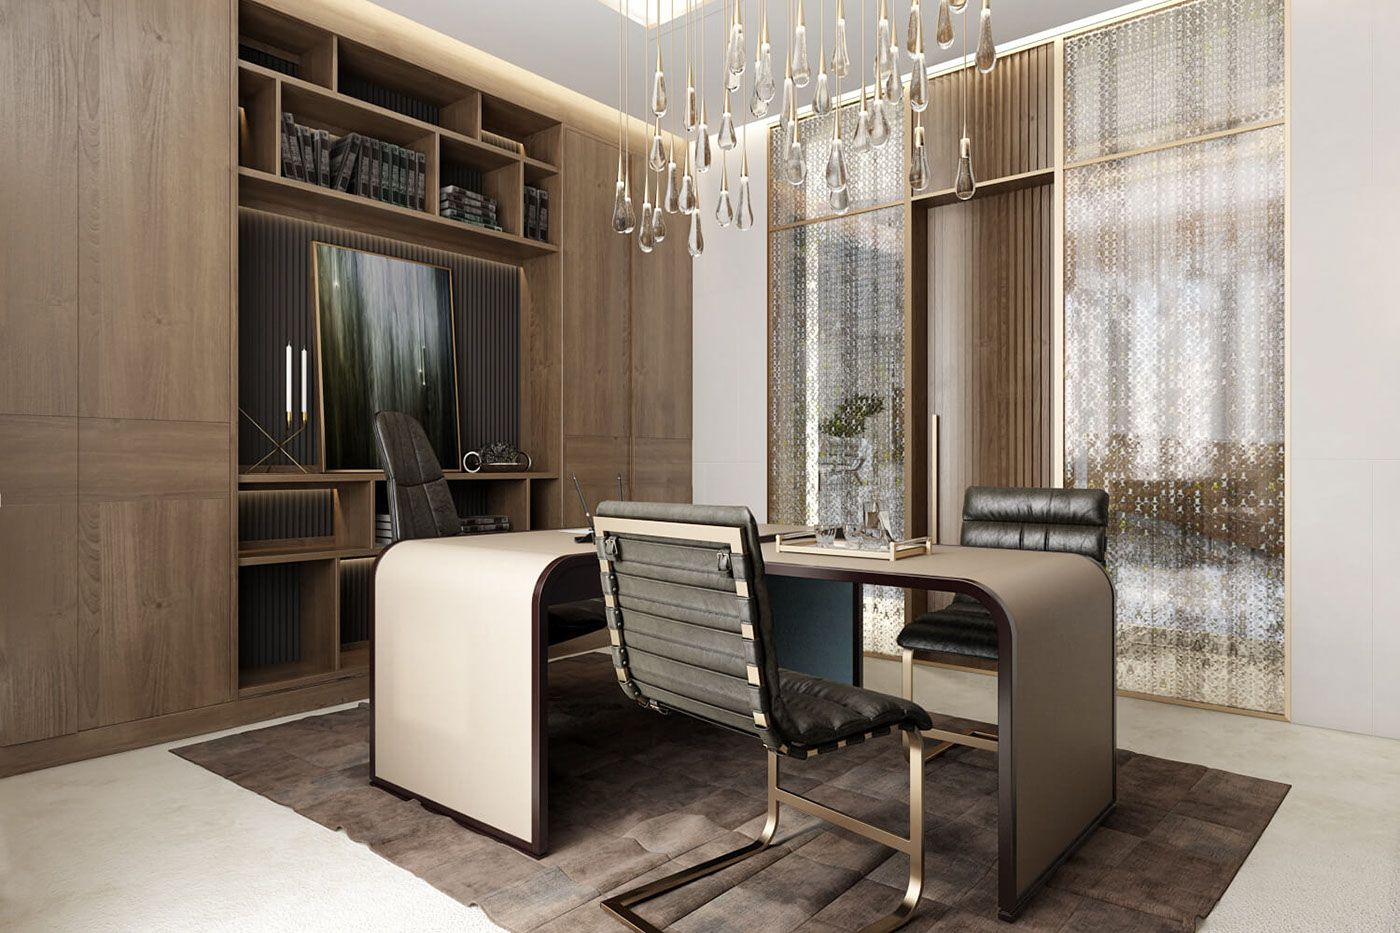 CEO Office Design Architectural Rendering by ArchiCGI on